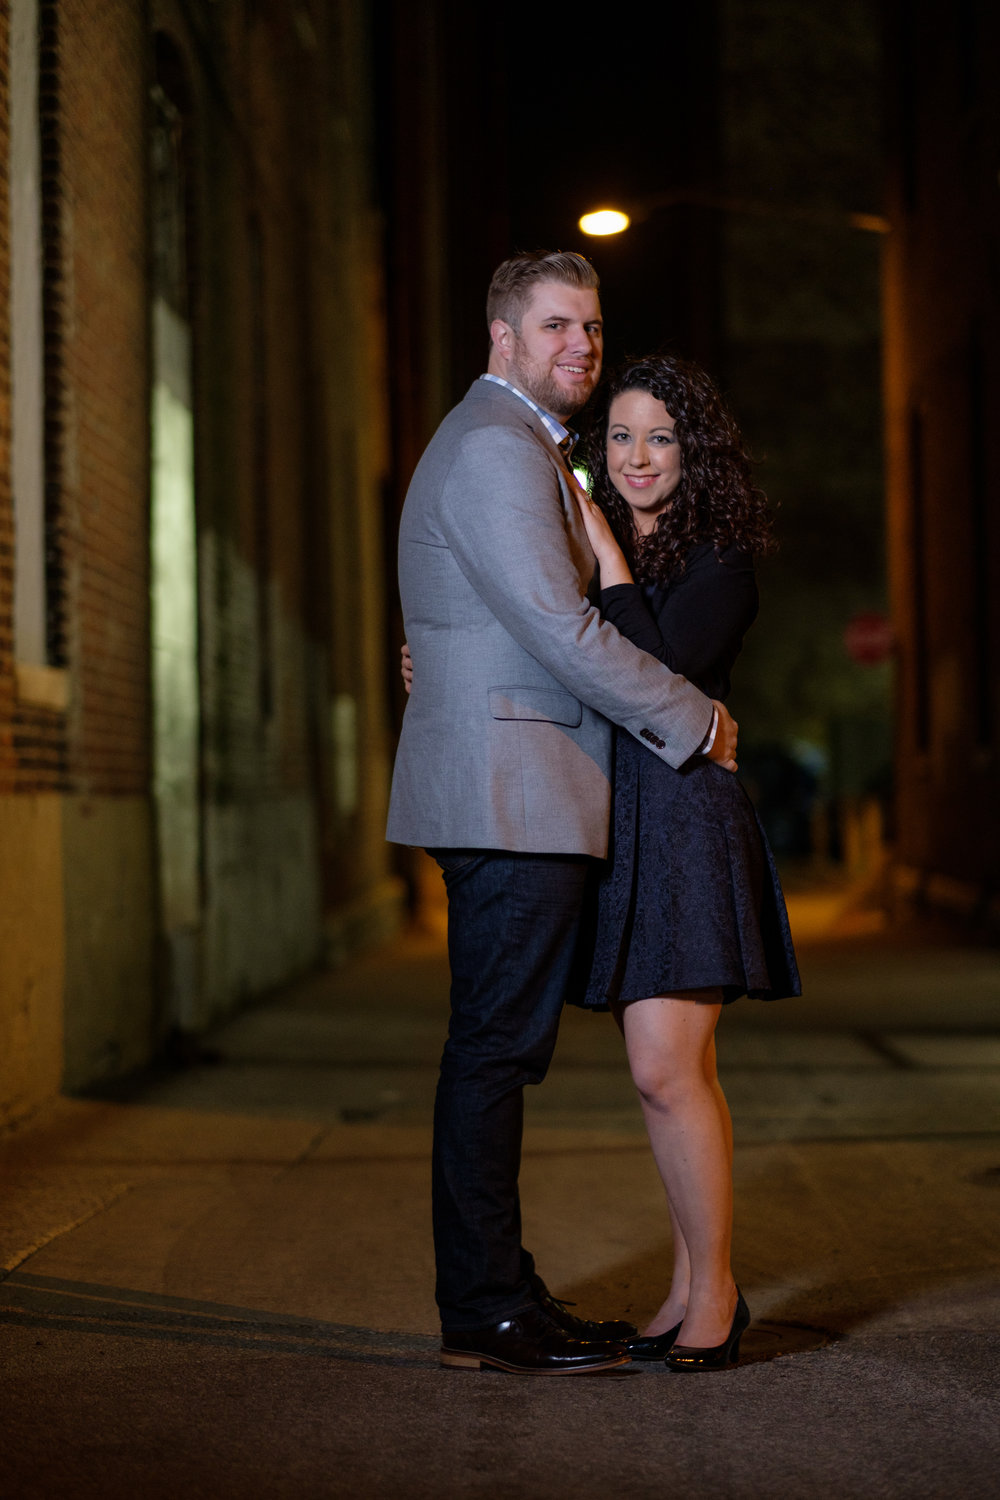 Downtown-Indianapolis-night-engagement-pictures-18.jpg